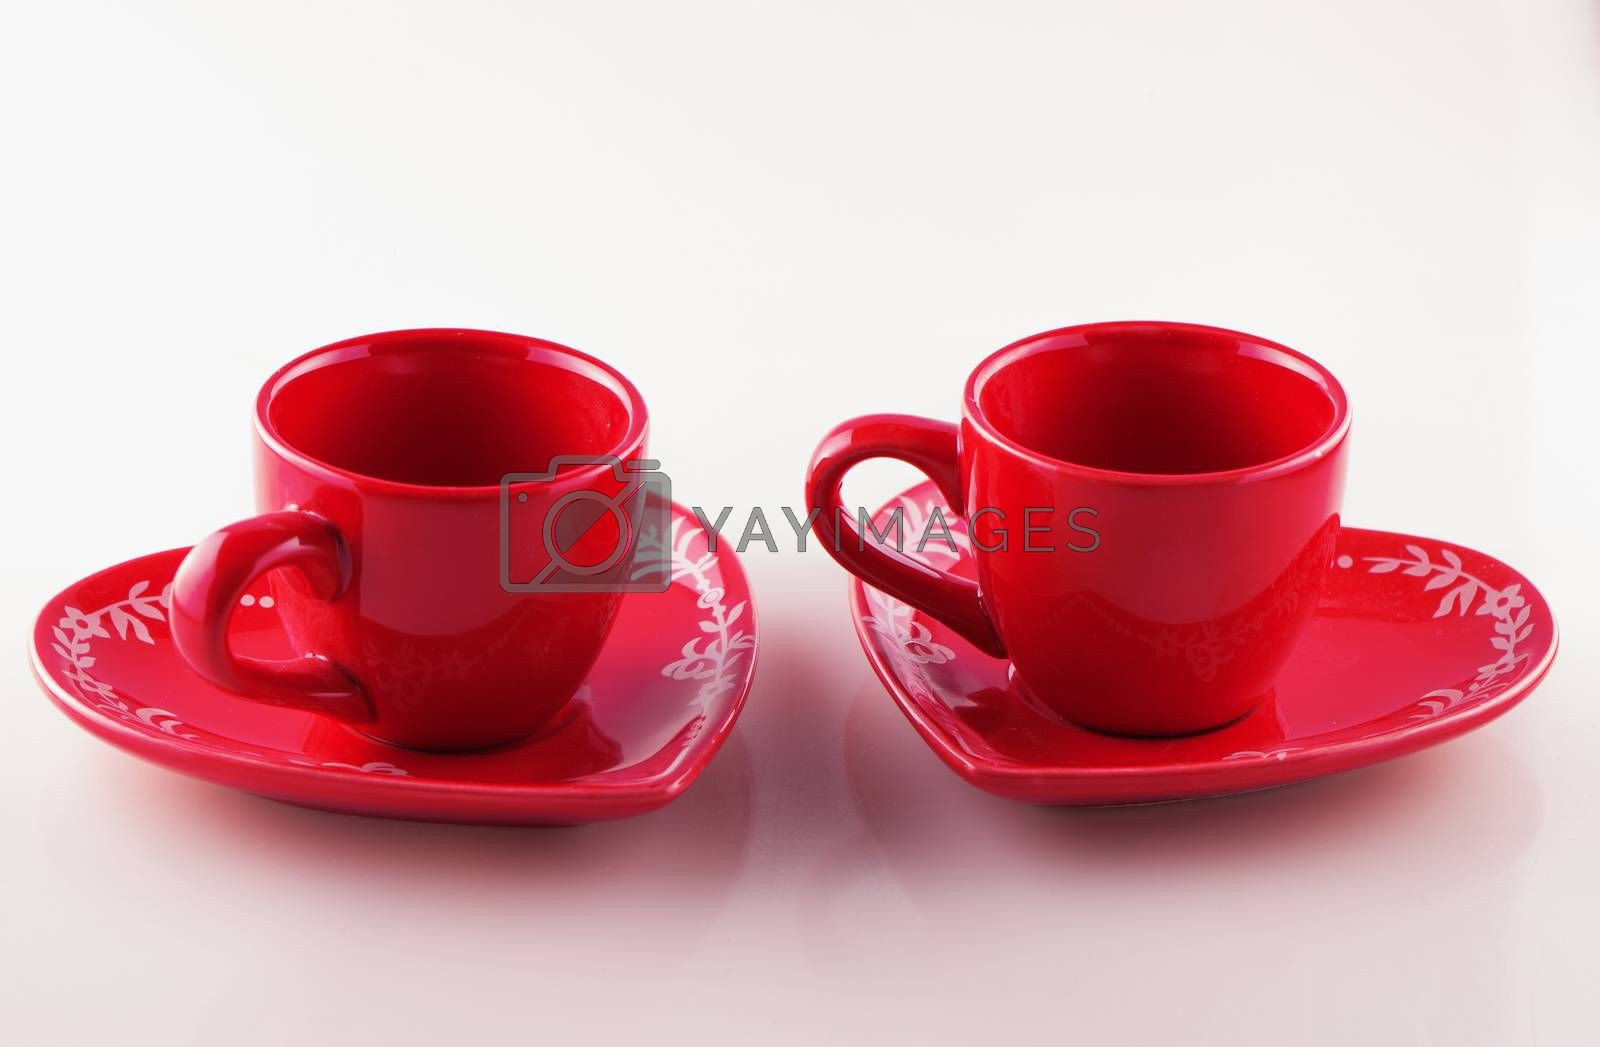 Royalty free image of Red cups by Koufax73